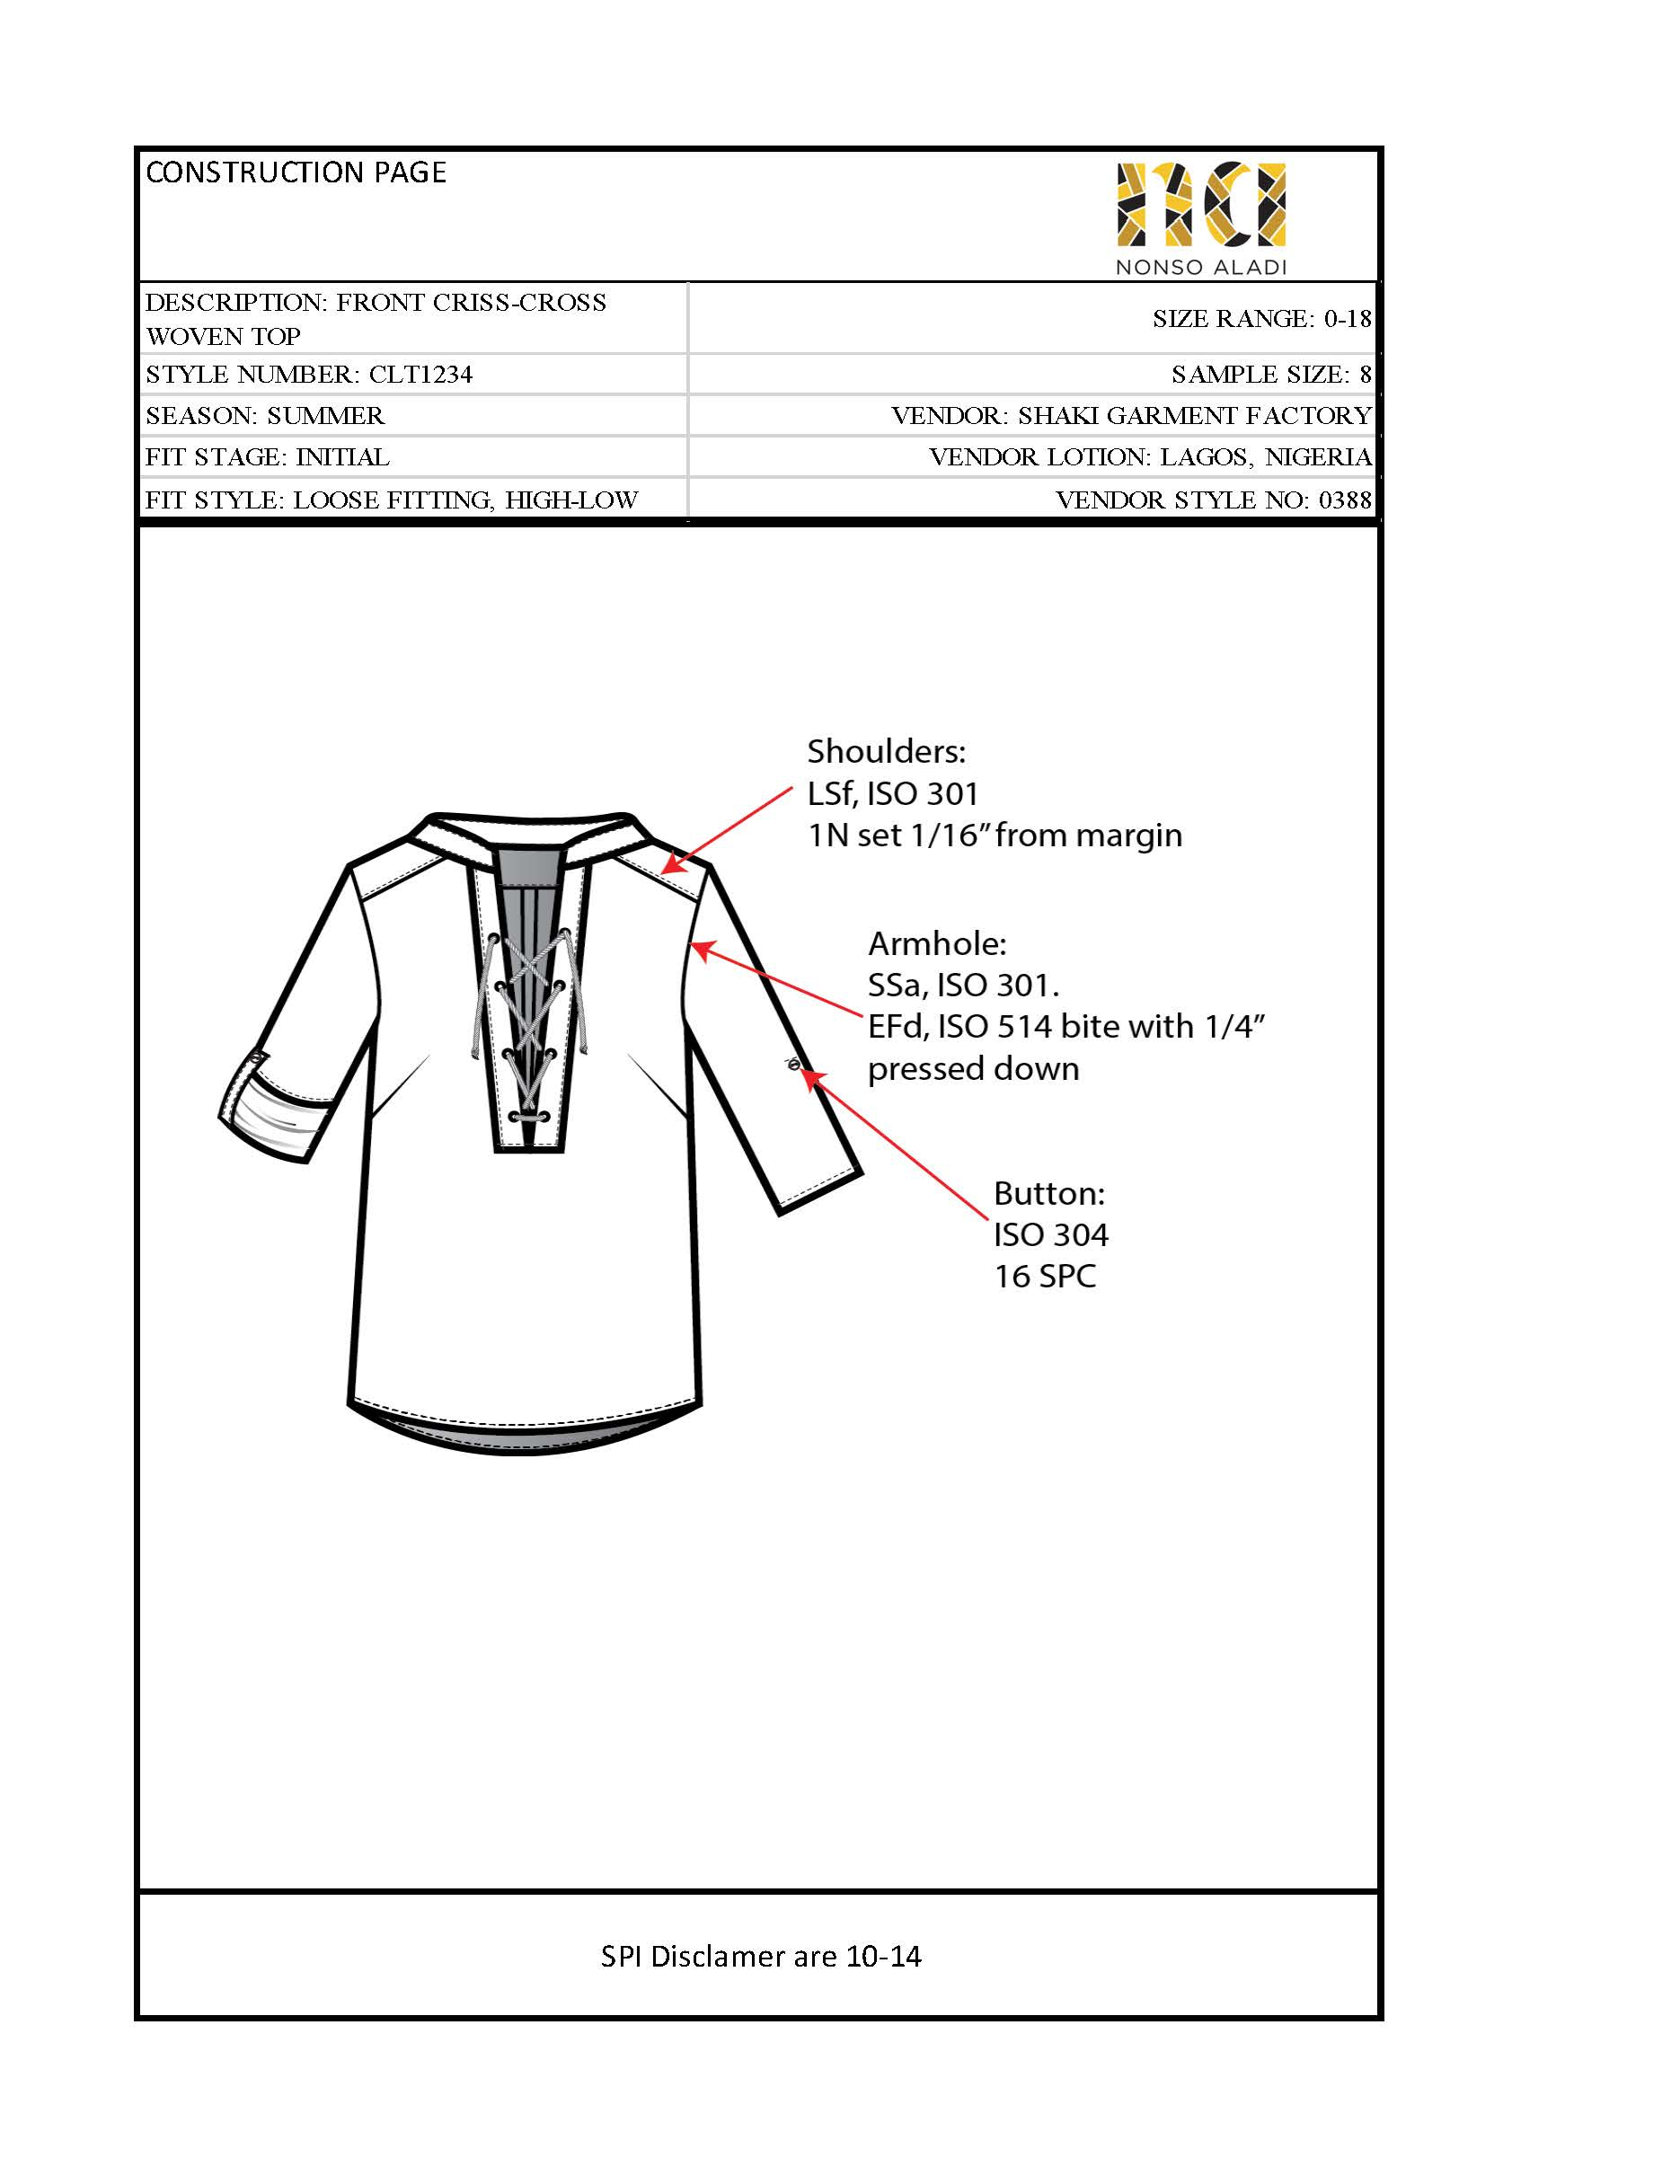 Blouse page_Page_07.jpg